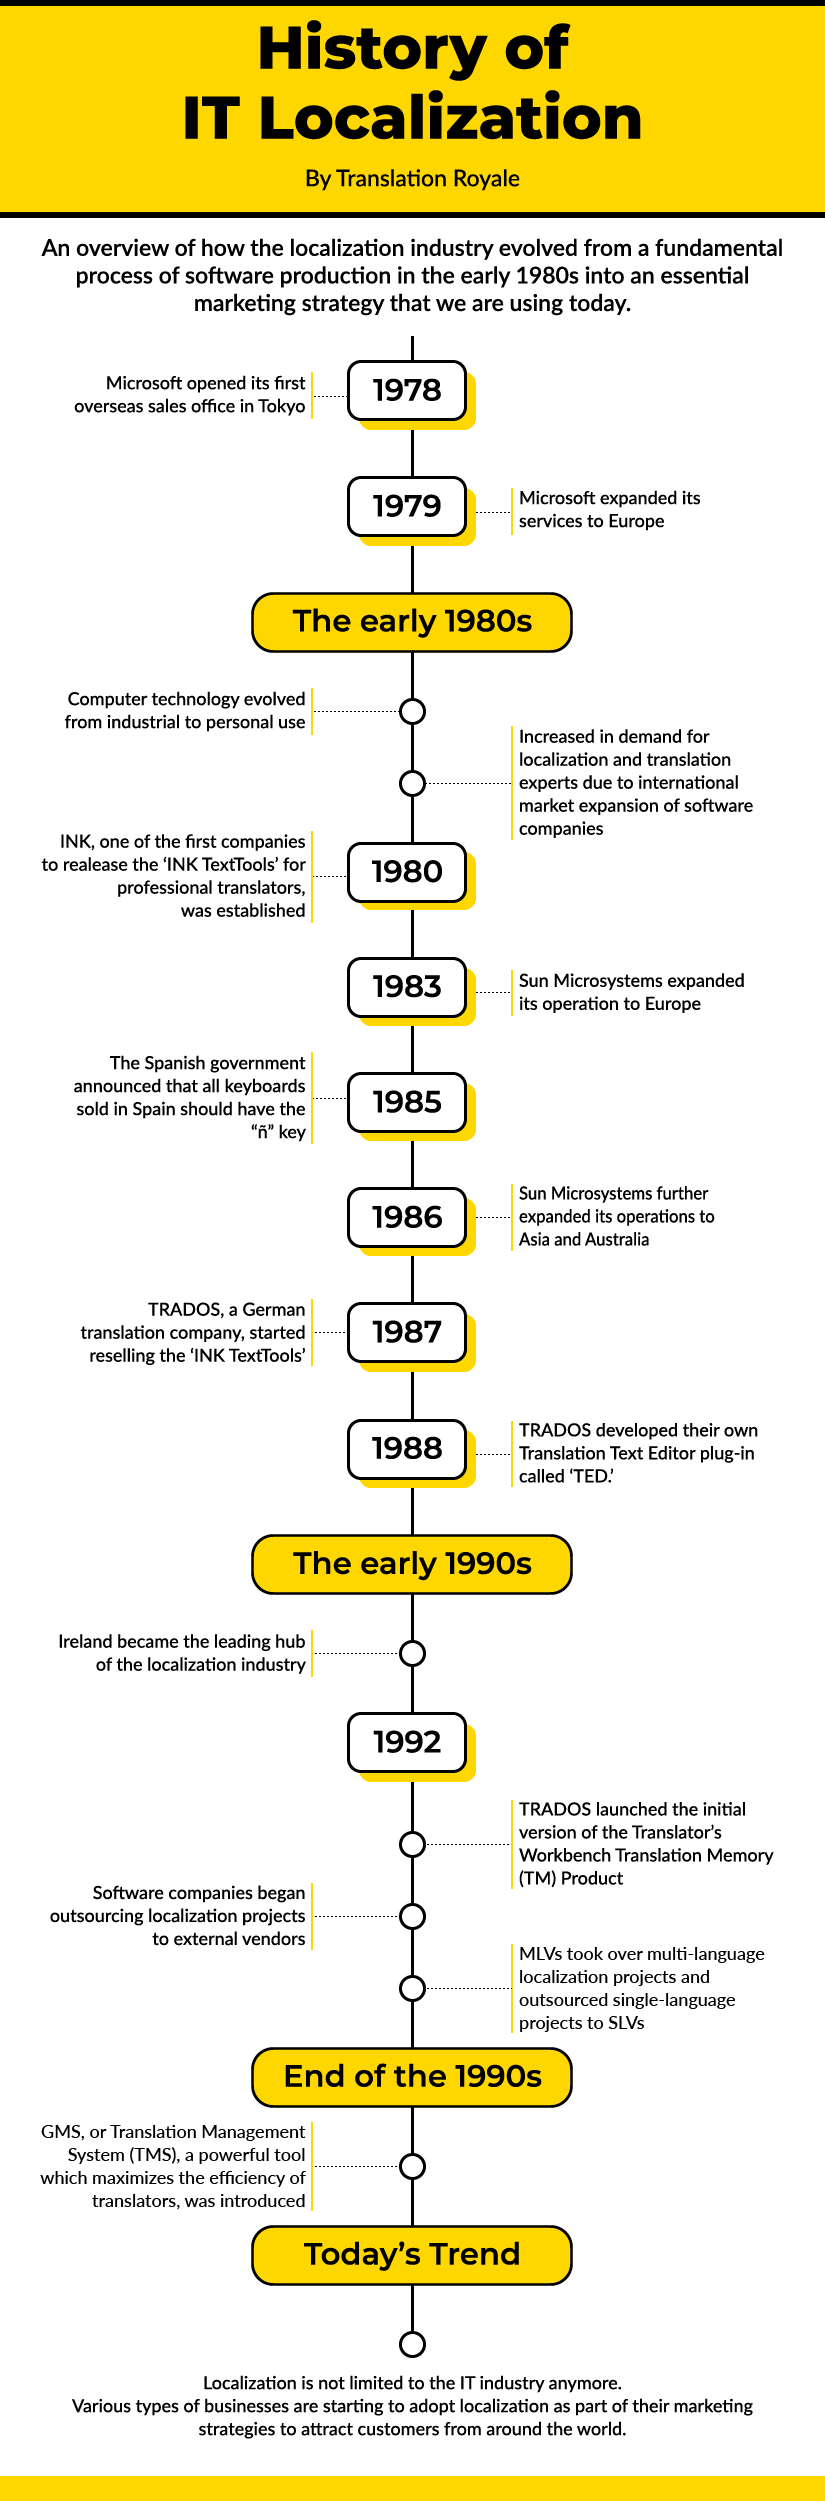 History of IT localization Timeline - Translation Royale